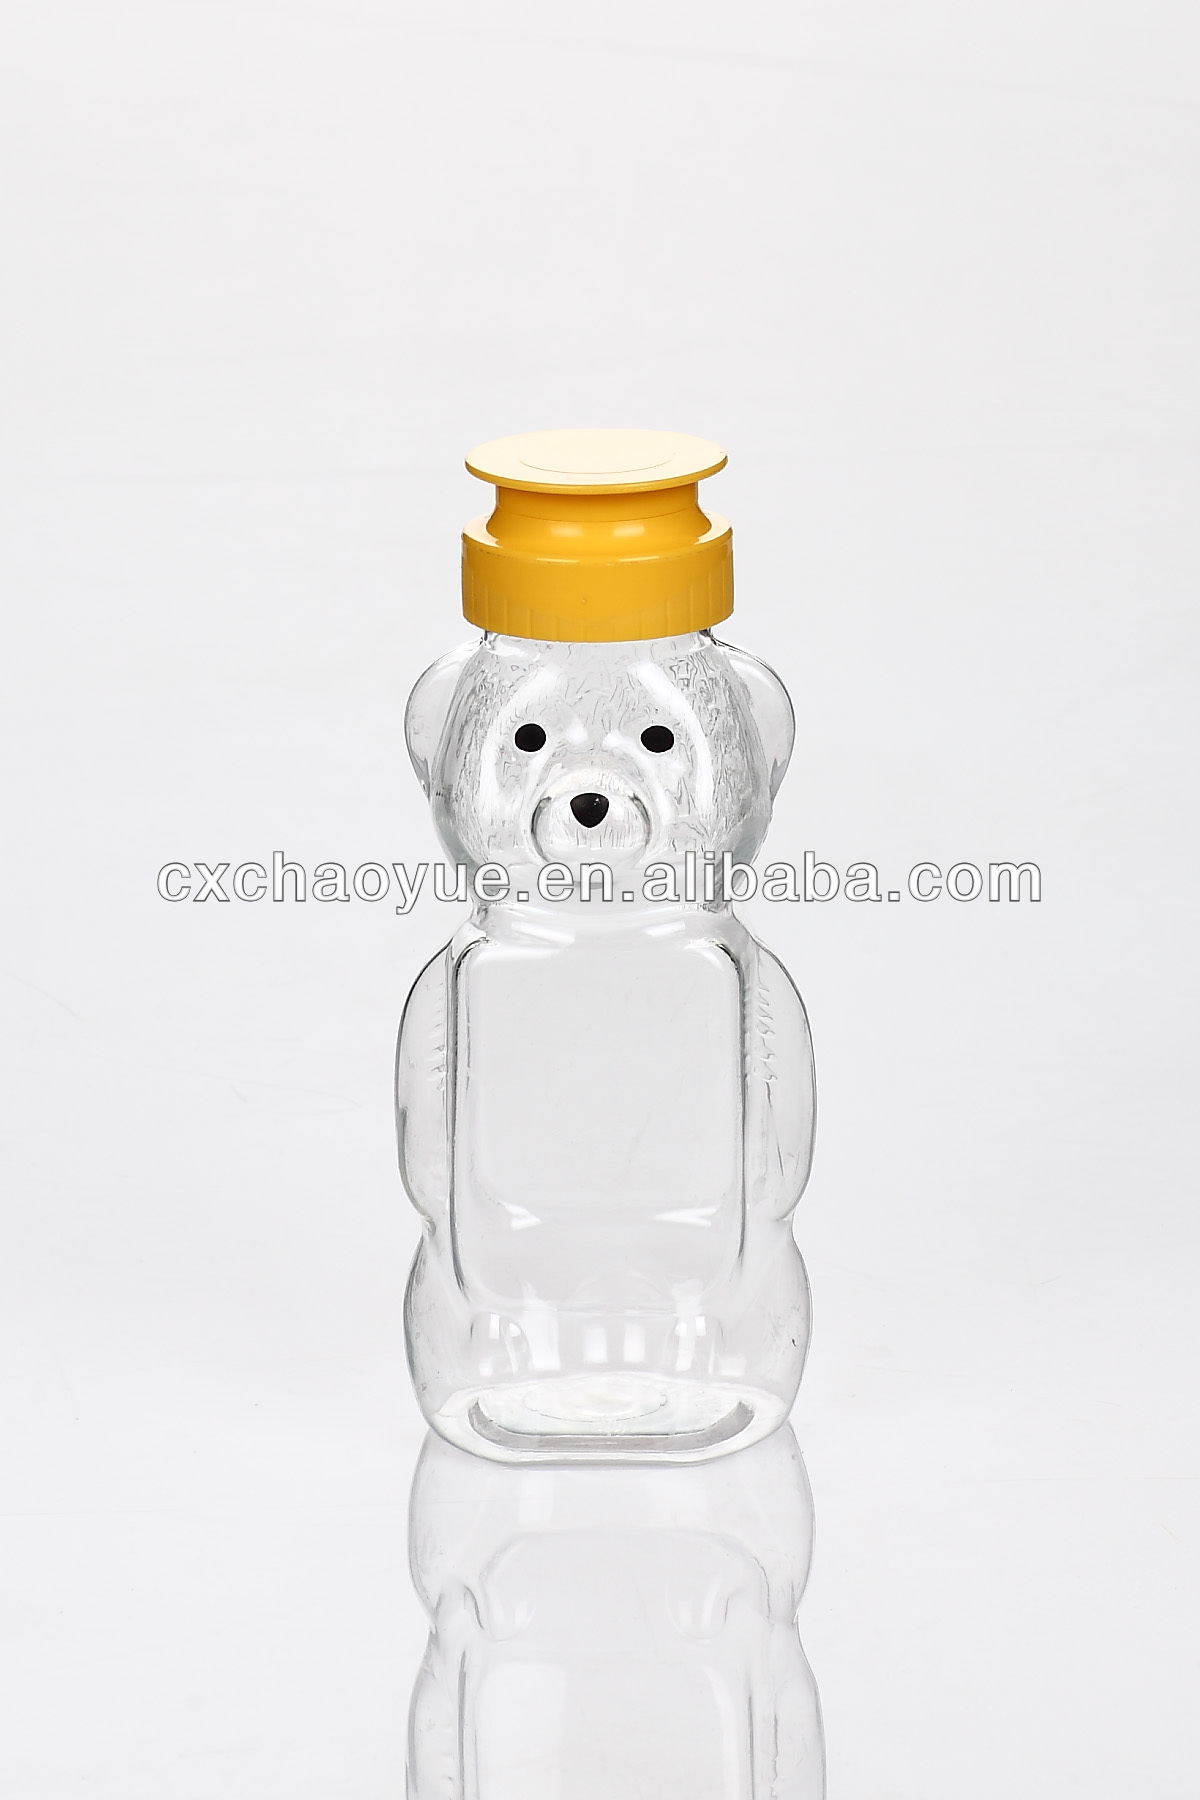 Eco-friendly plastic pet bottle can be recycled honey squeeze bottle 350g